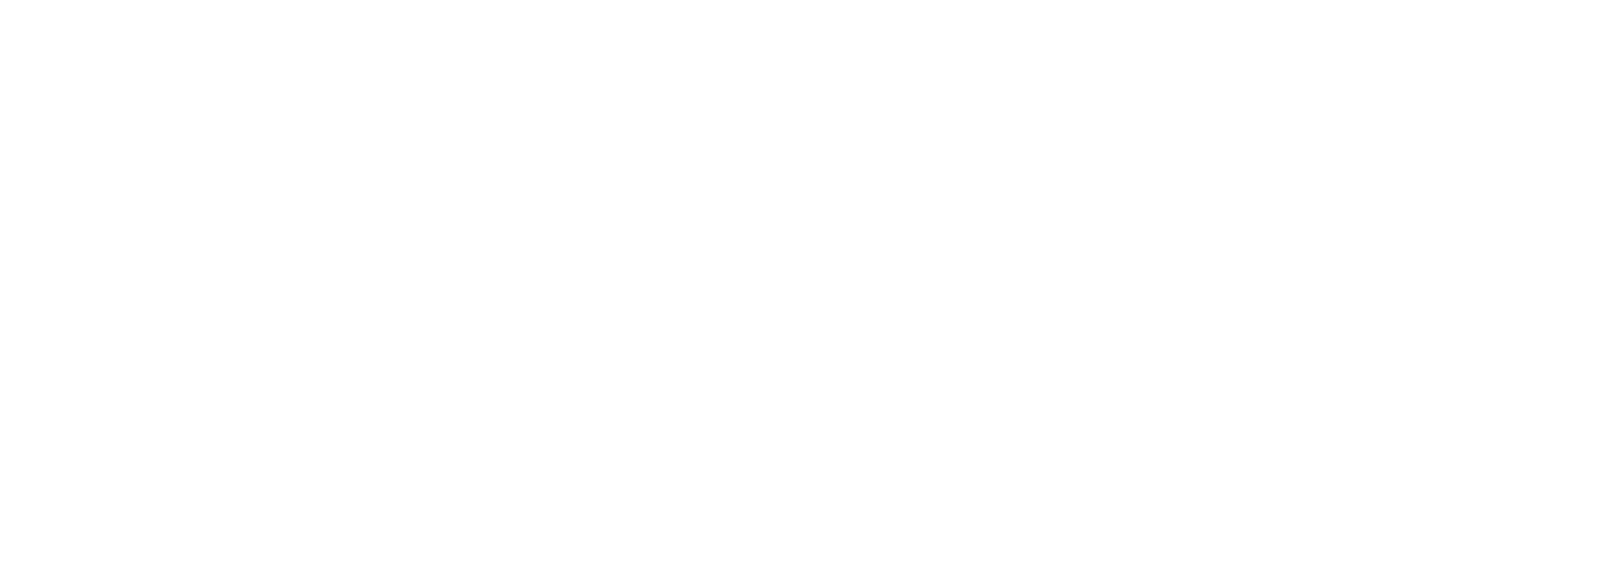 Behold Public Reading of Scripture